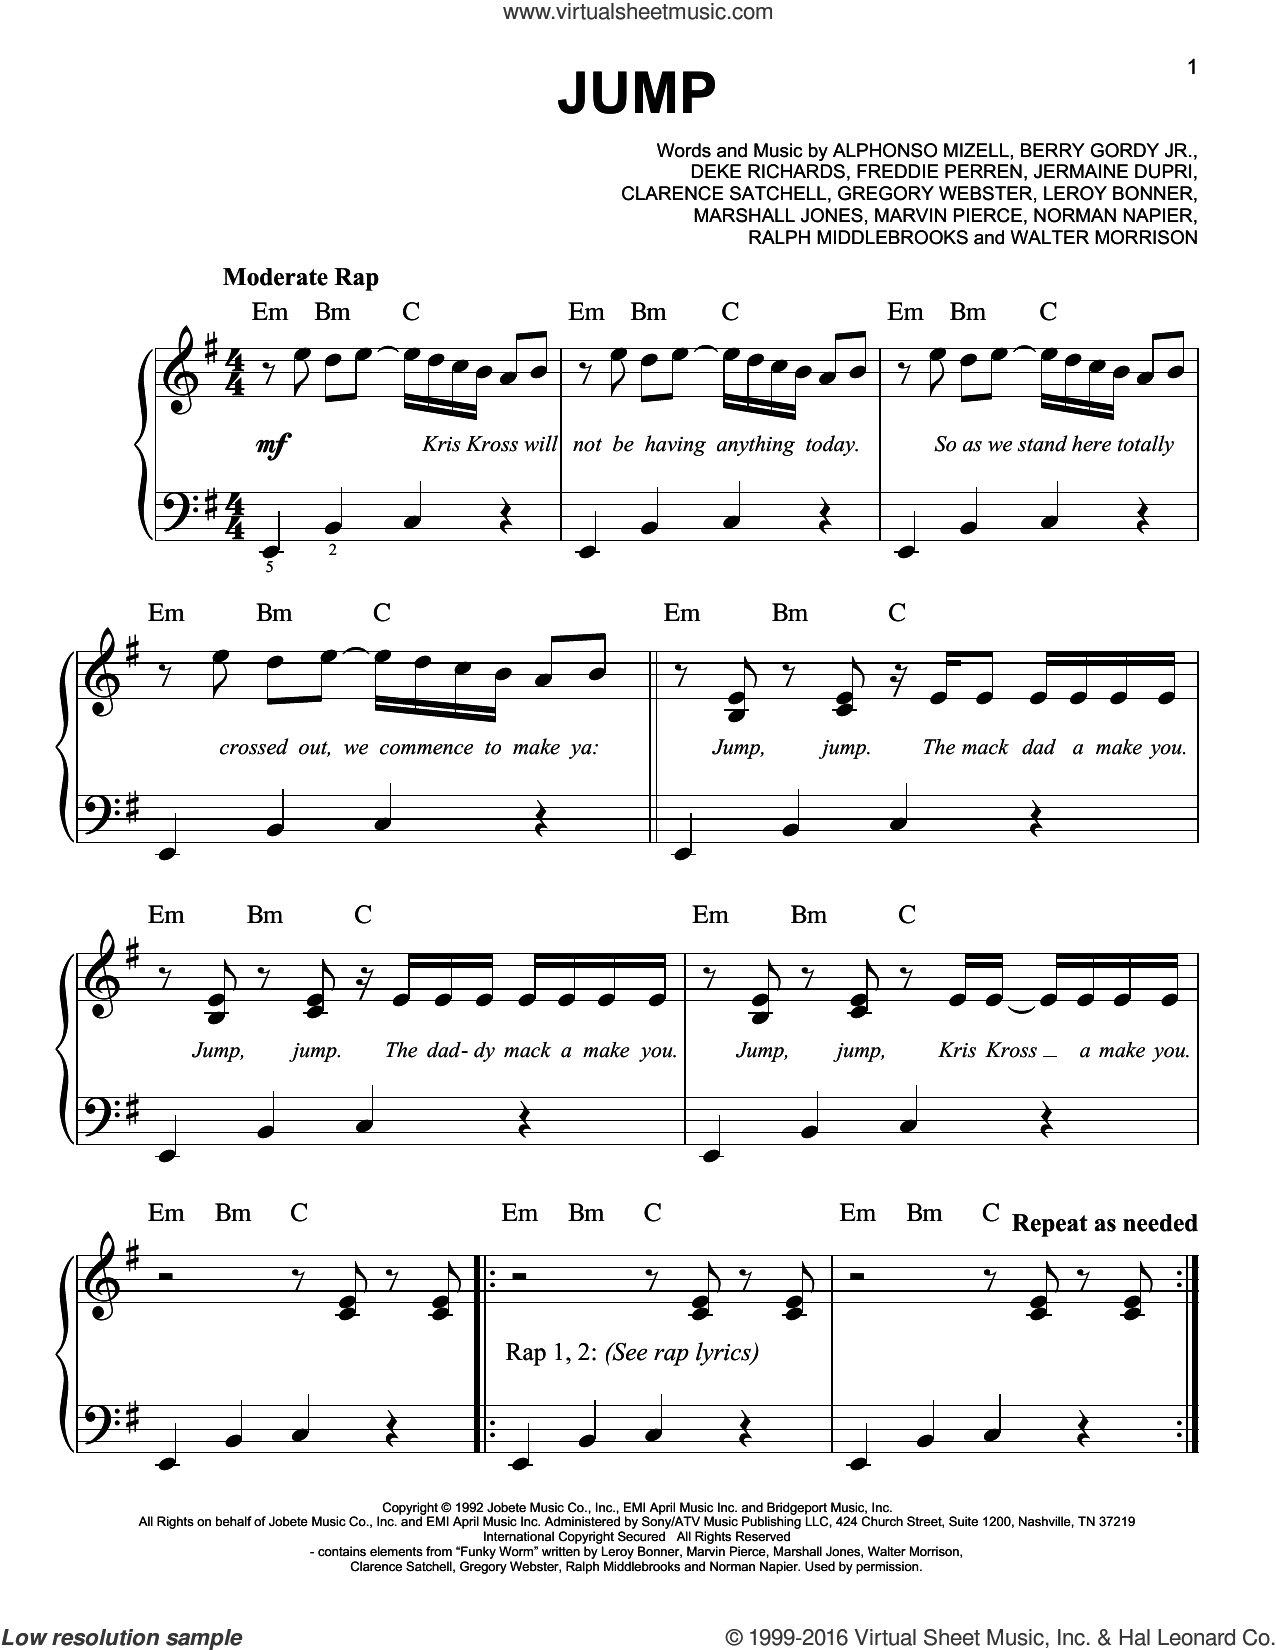 Jump sheet music for piano solo by Kriss Kross, Alphonso Mizell, Berry Gordy Jr., Clarence Satchell, Deke Richards, Frederick Perren, Gregory Webster, Jermaine Dupri, Leroy Bonner, Marshall Jones, Marvin Pierce, Norman Napier, Ralph Middlebrooks and Walter Morrison, easy skill level